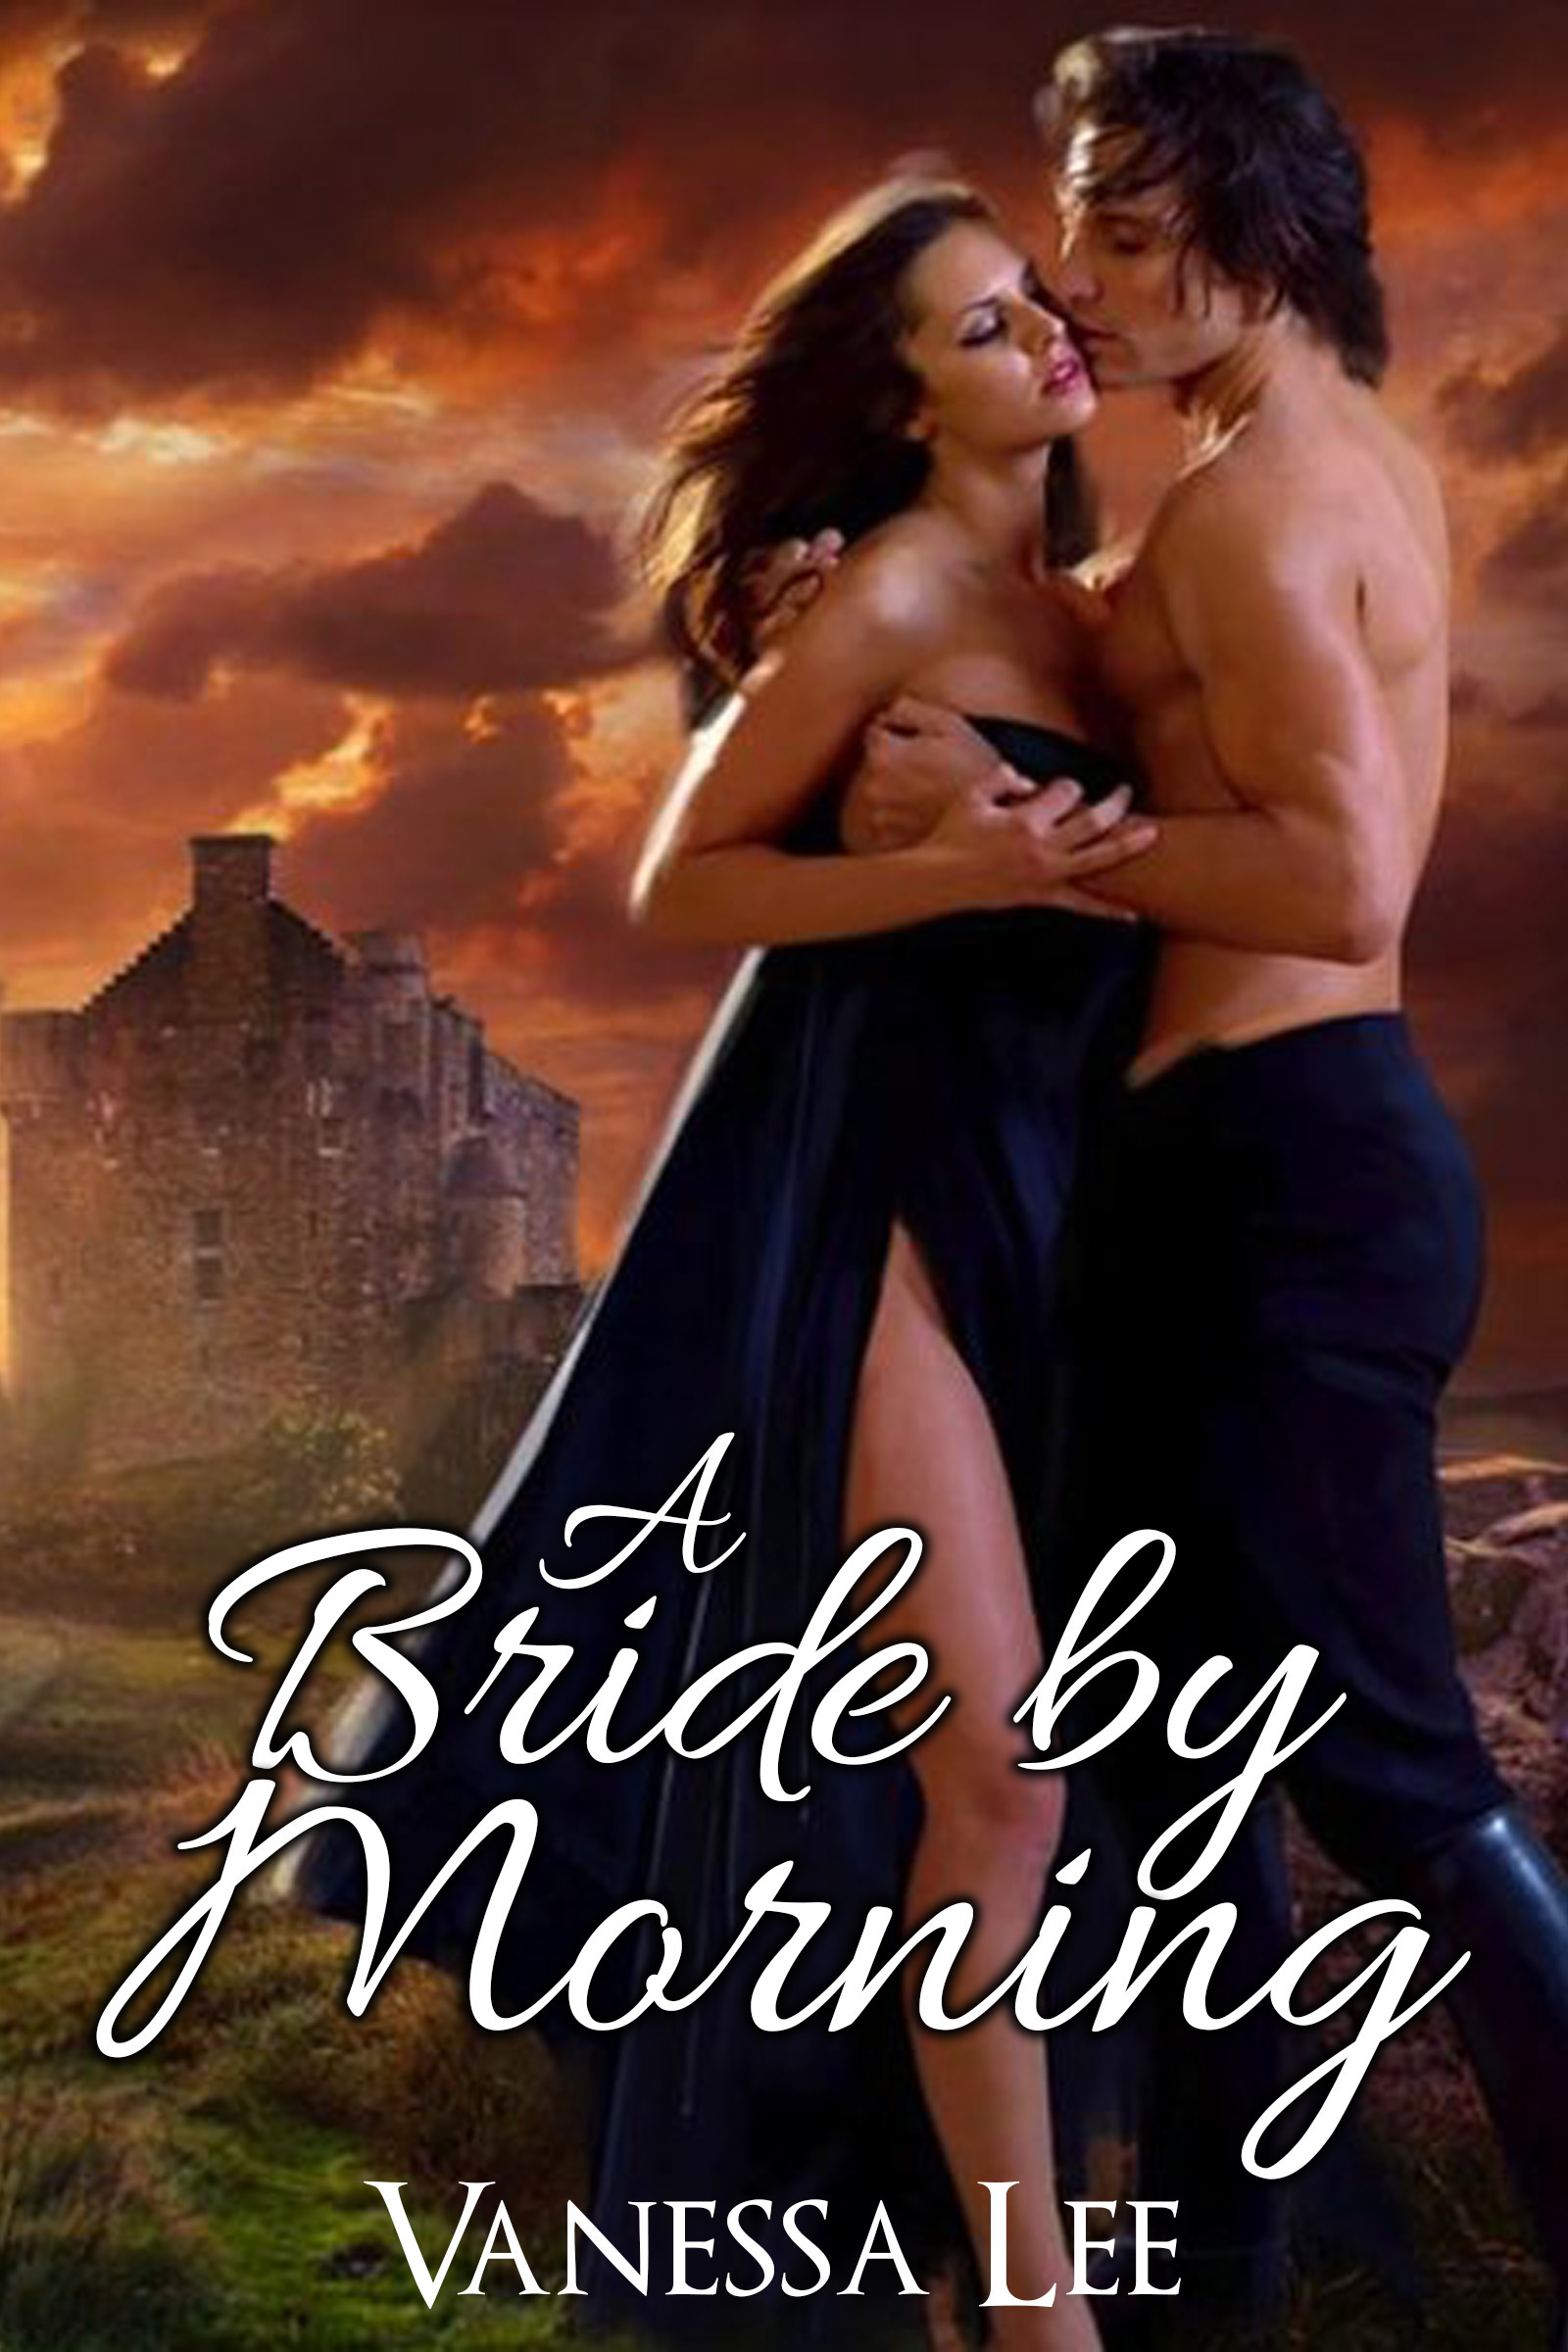 A Bride Morning by Vanessa Lee